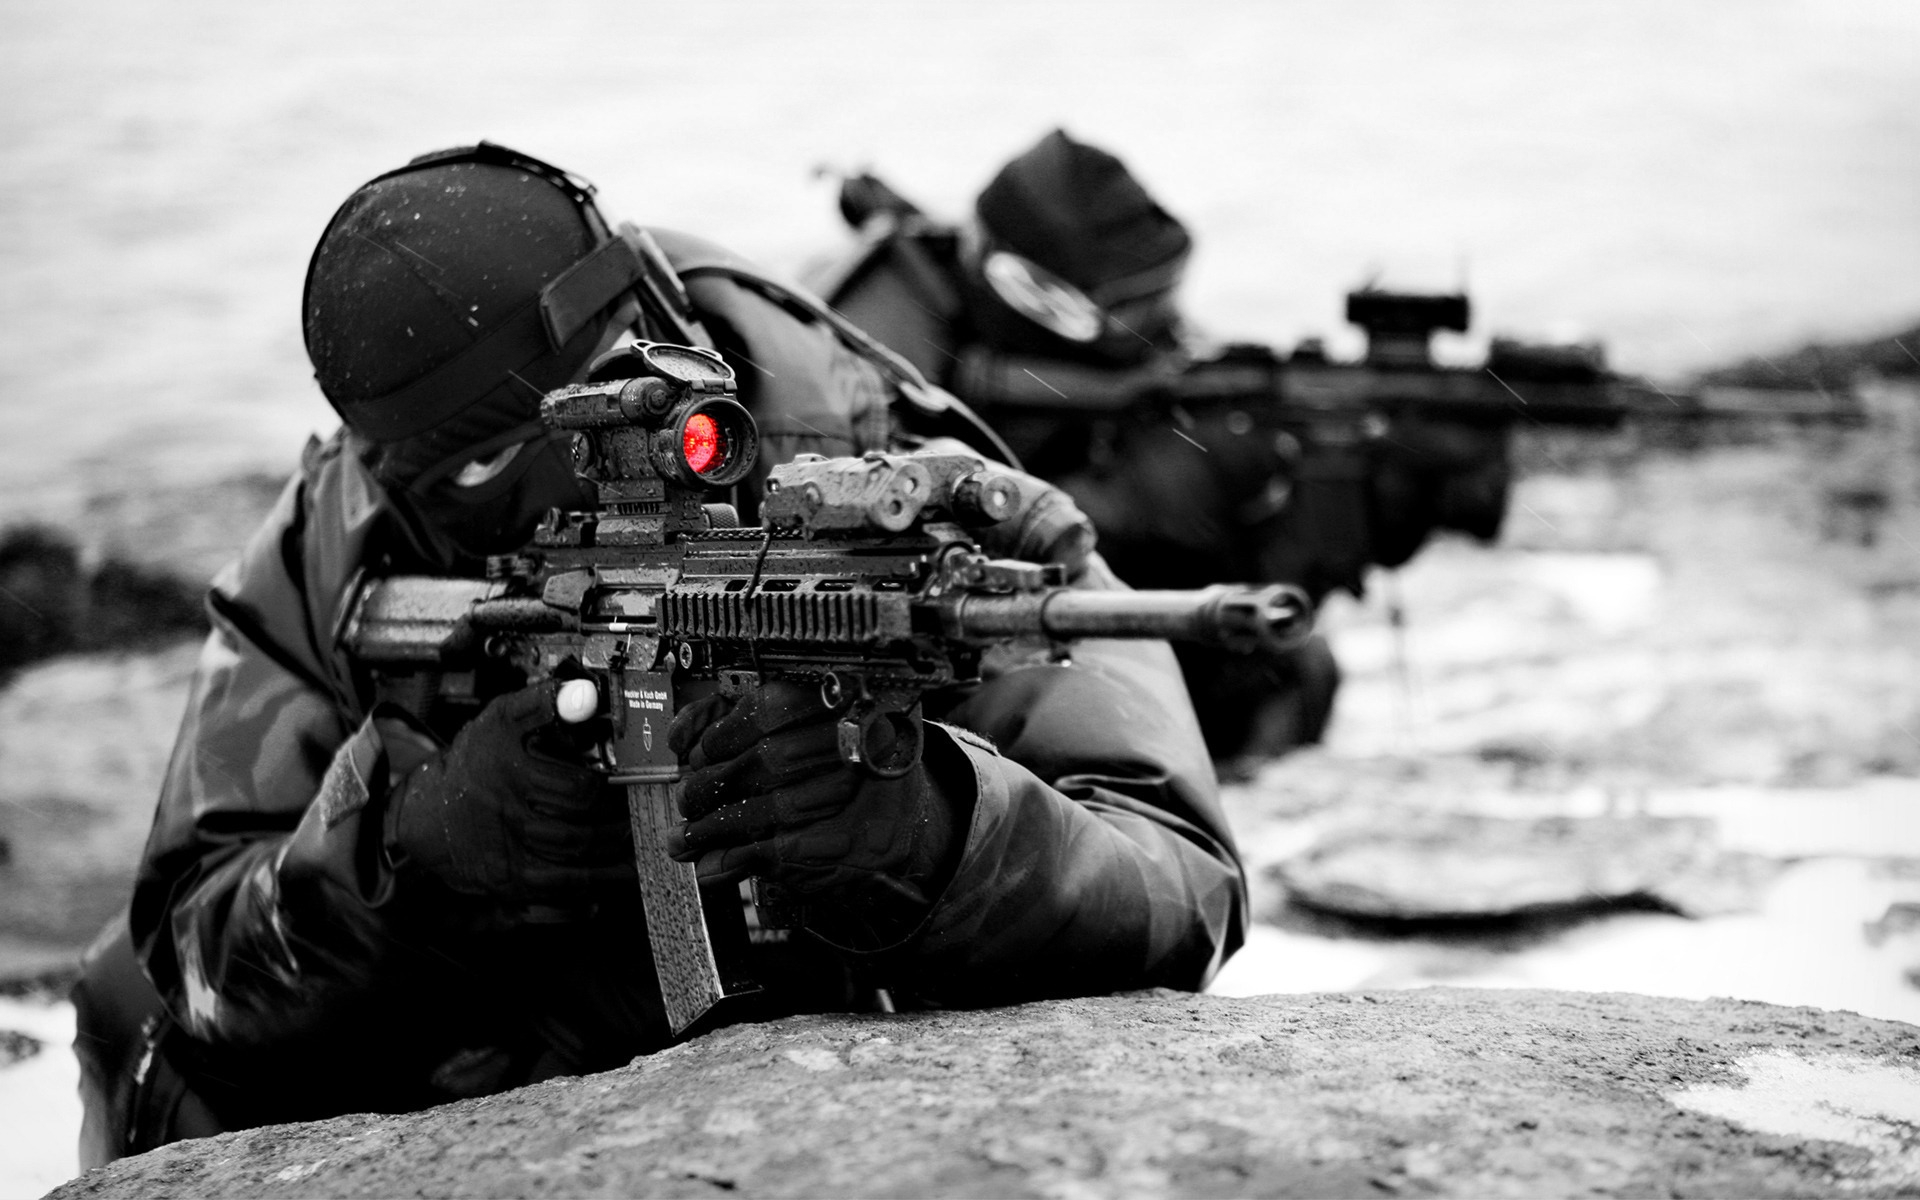 Sniper Rifles HD Wallpapers are to download from AMB Wallpapers 1920x1200